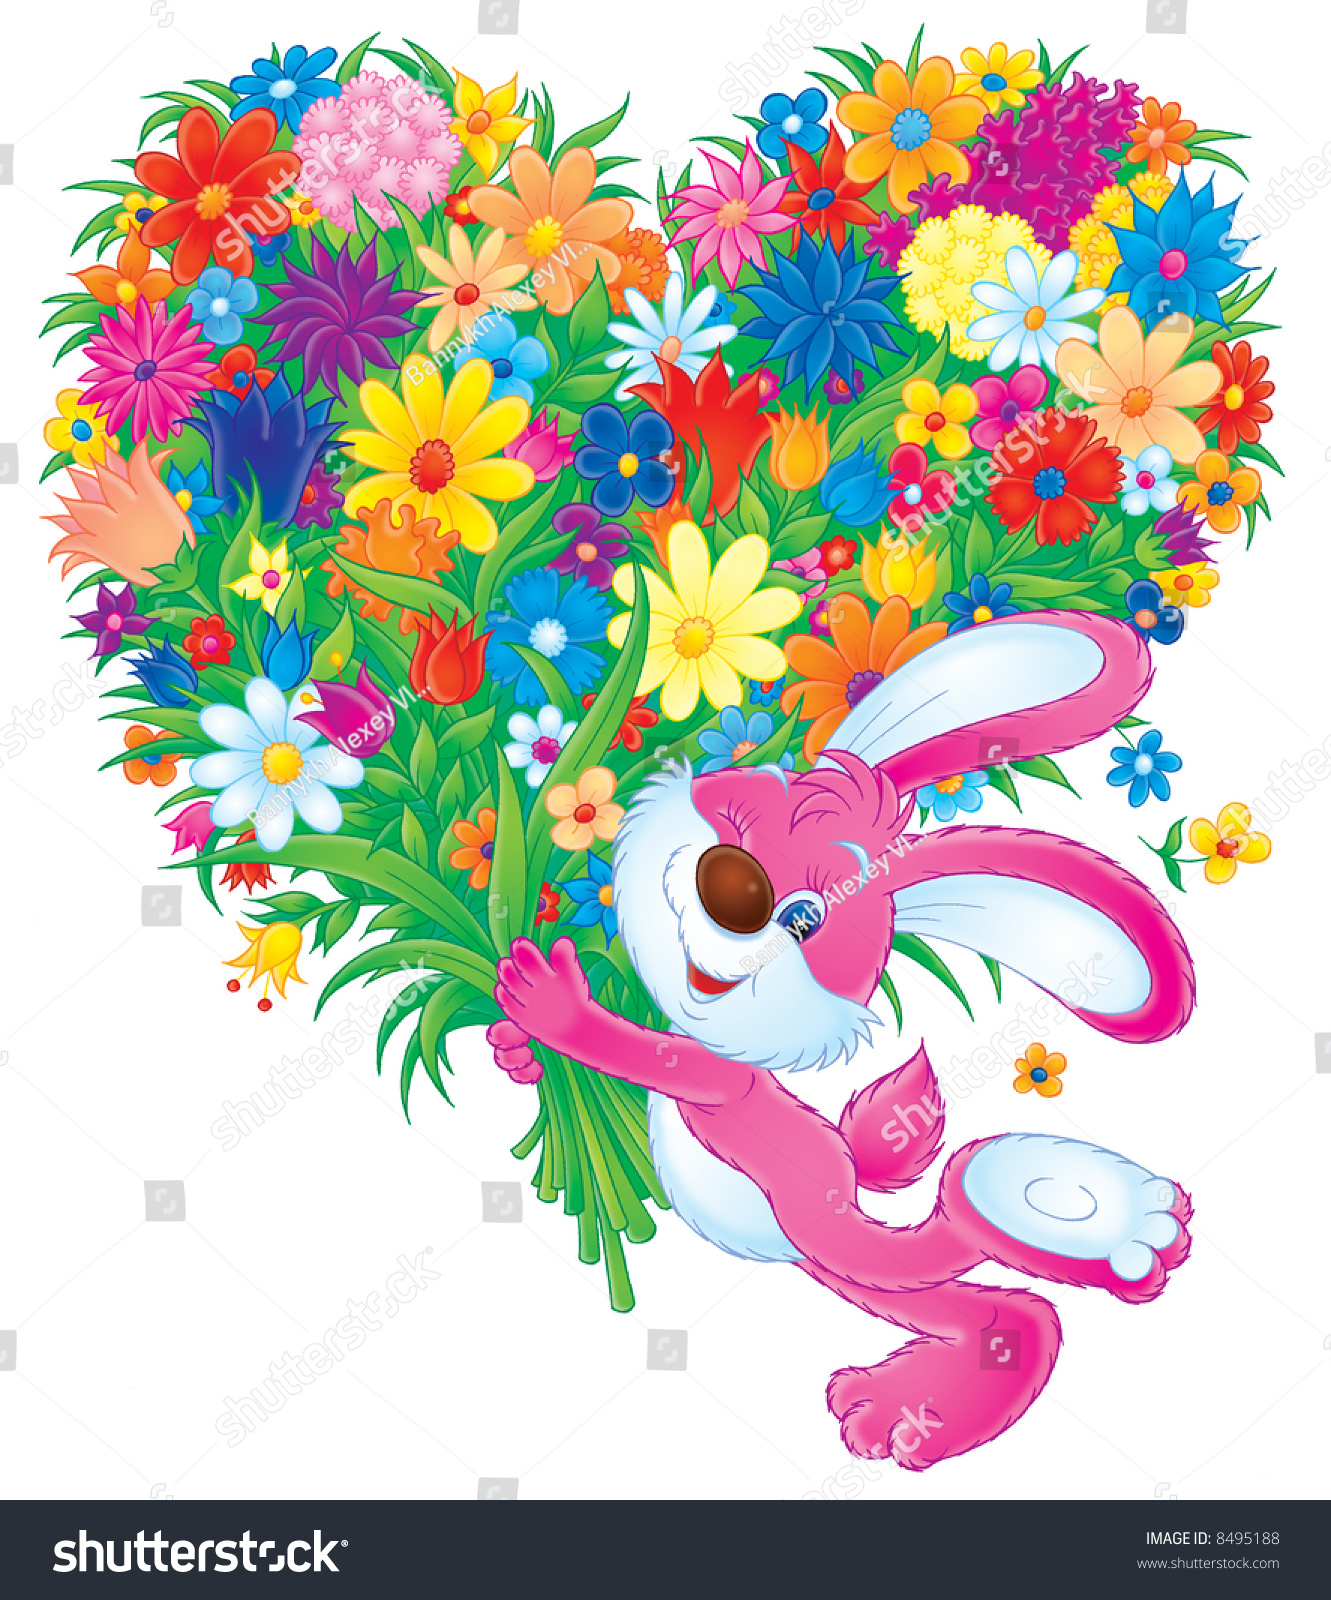 Pink rabbit with a big bouquet of flowers stock photo for Biggest bouquet of flowers